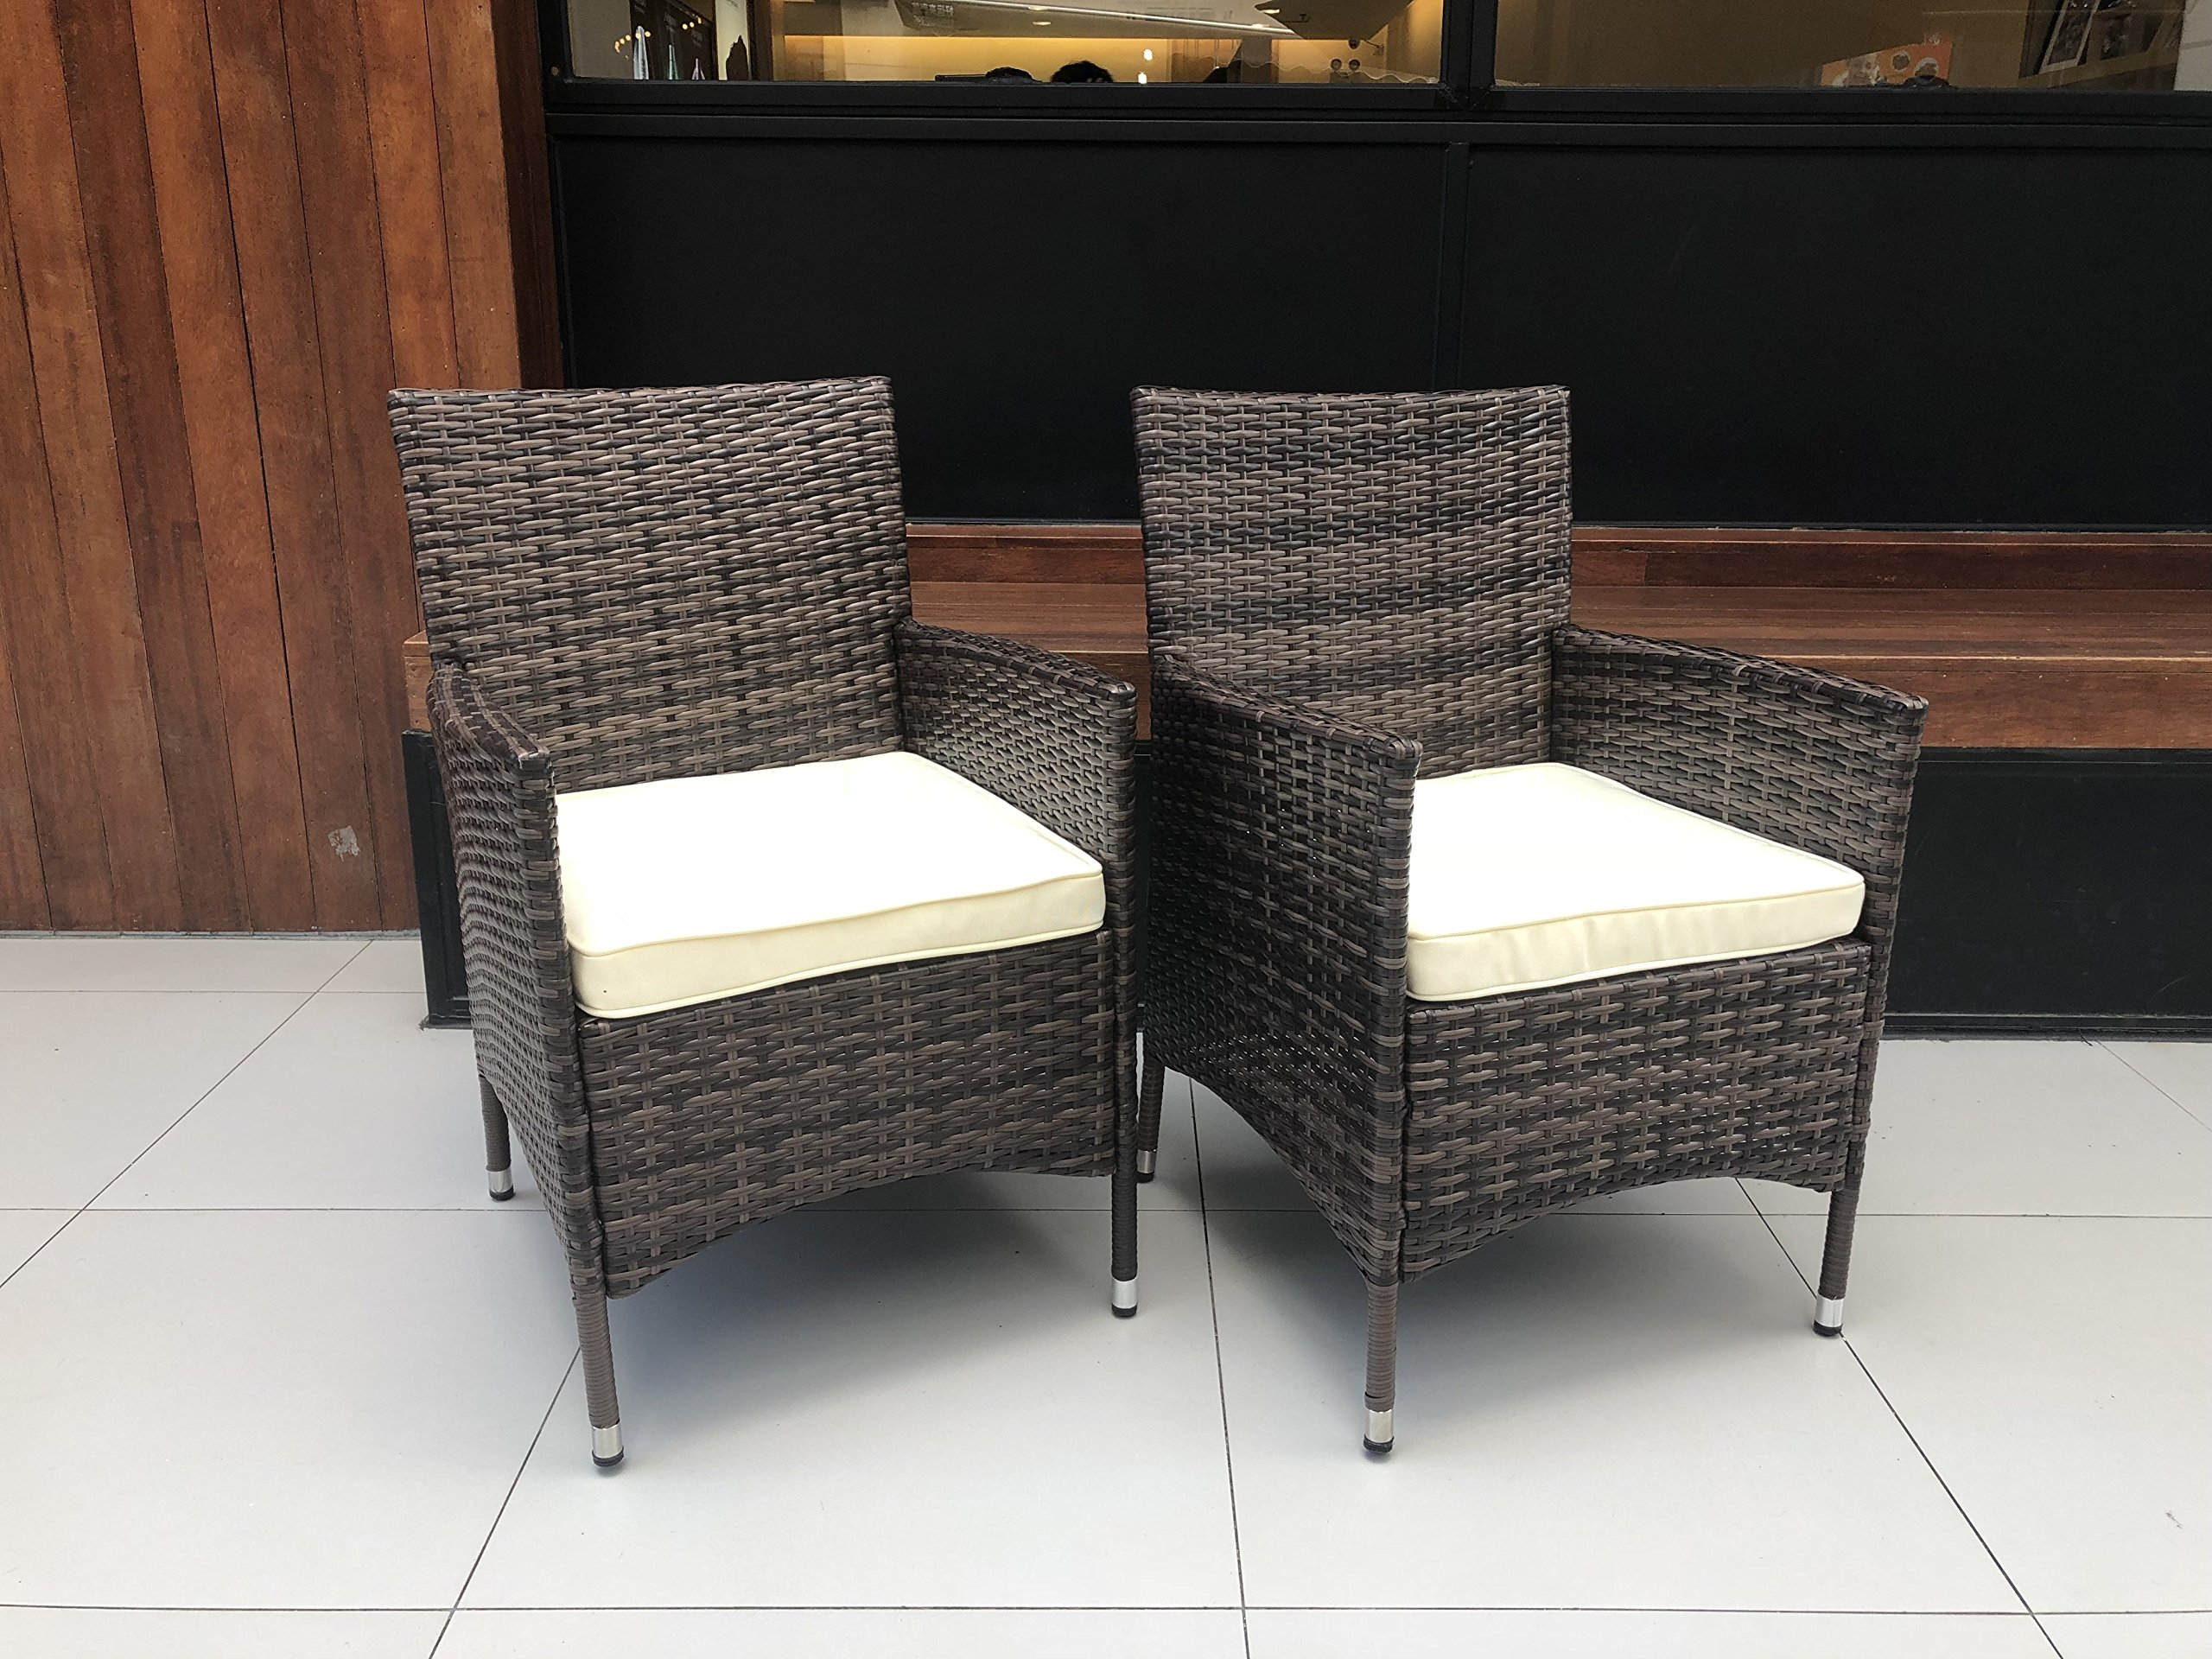 HTTH 2 Pcs Patio Rattan Dining Chairs with Soft Sofa Cushion   Wicker, Outdoor, Backyard, Porch, Garden, Poolside (2 Pcs, Mixed) by HTTH (Image #2)